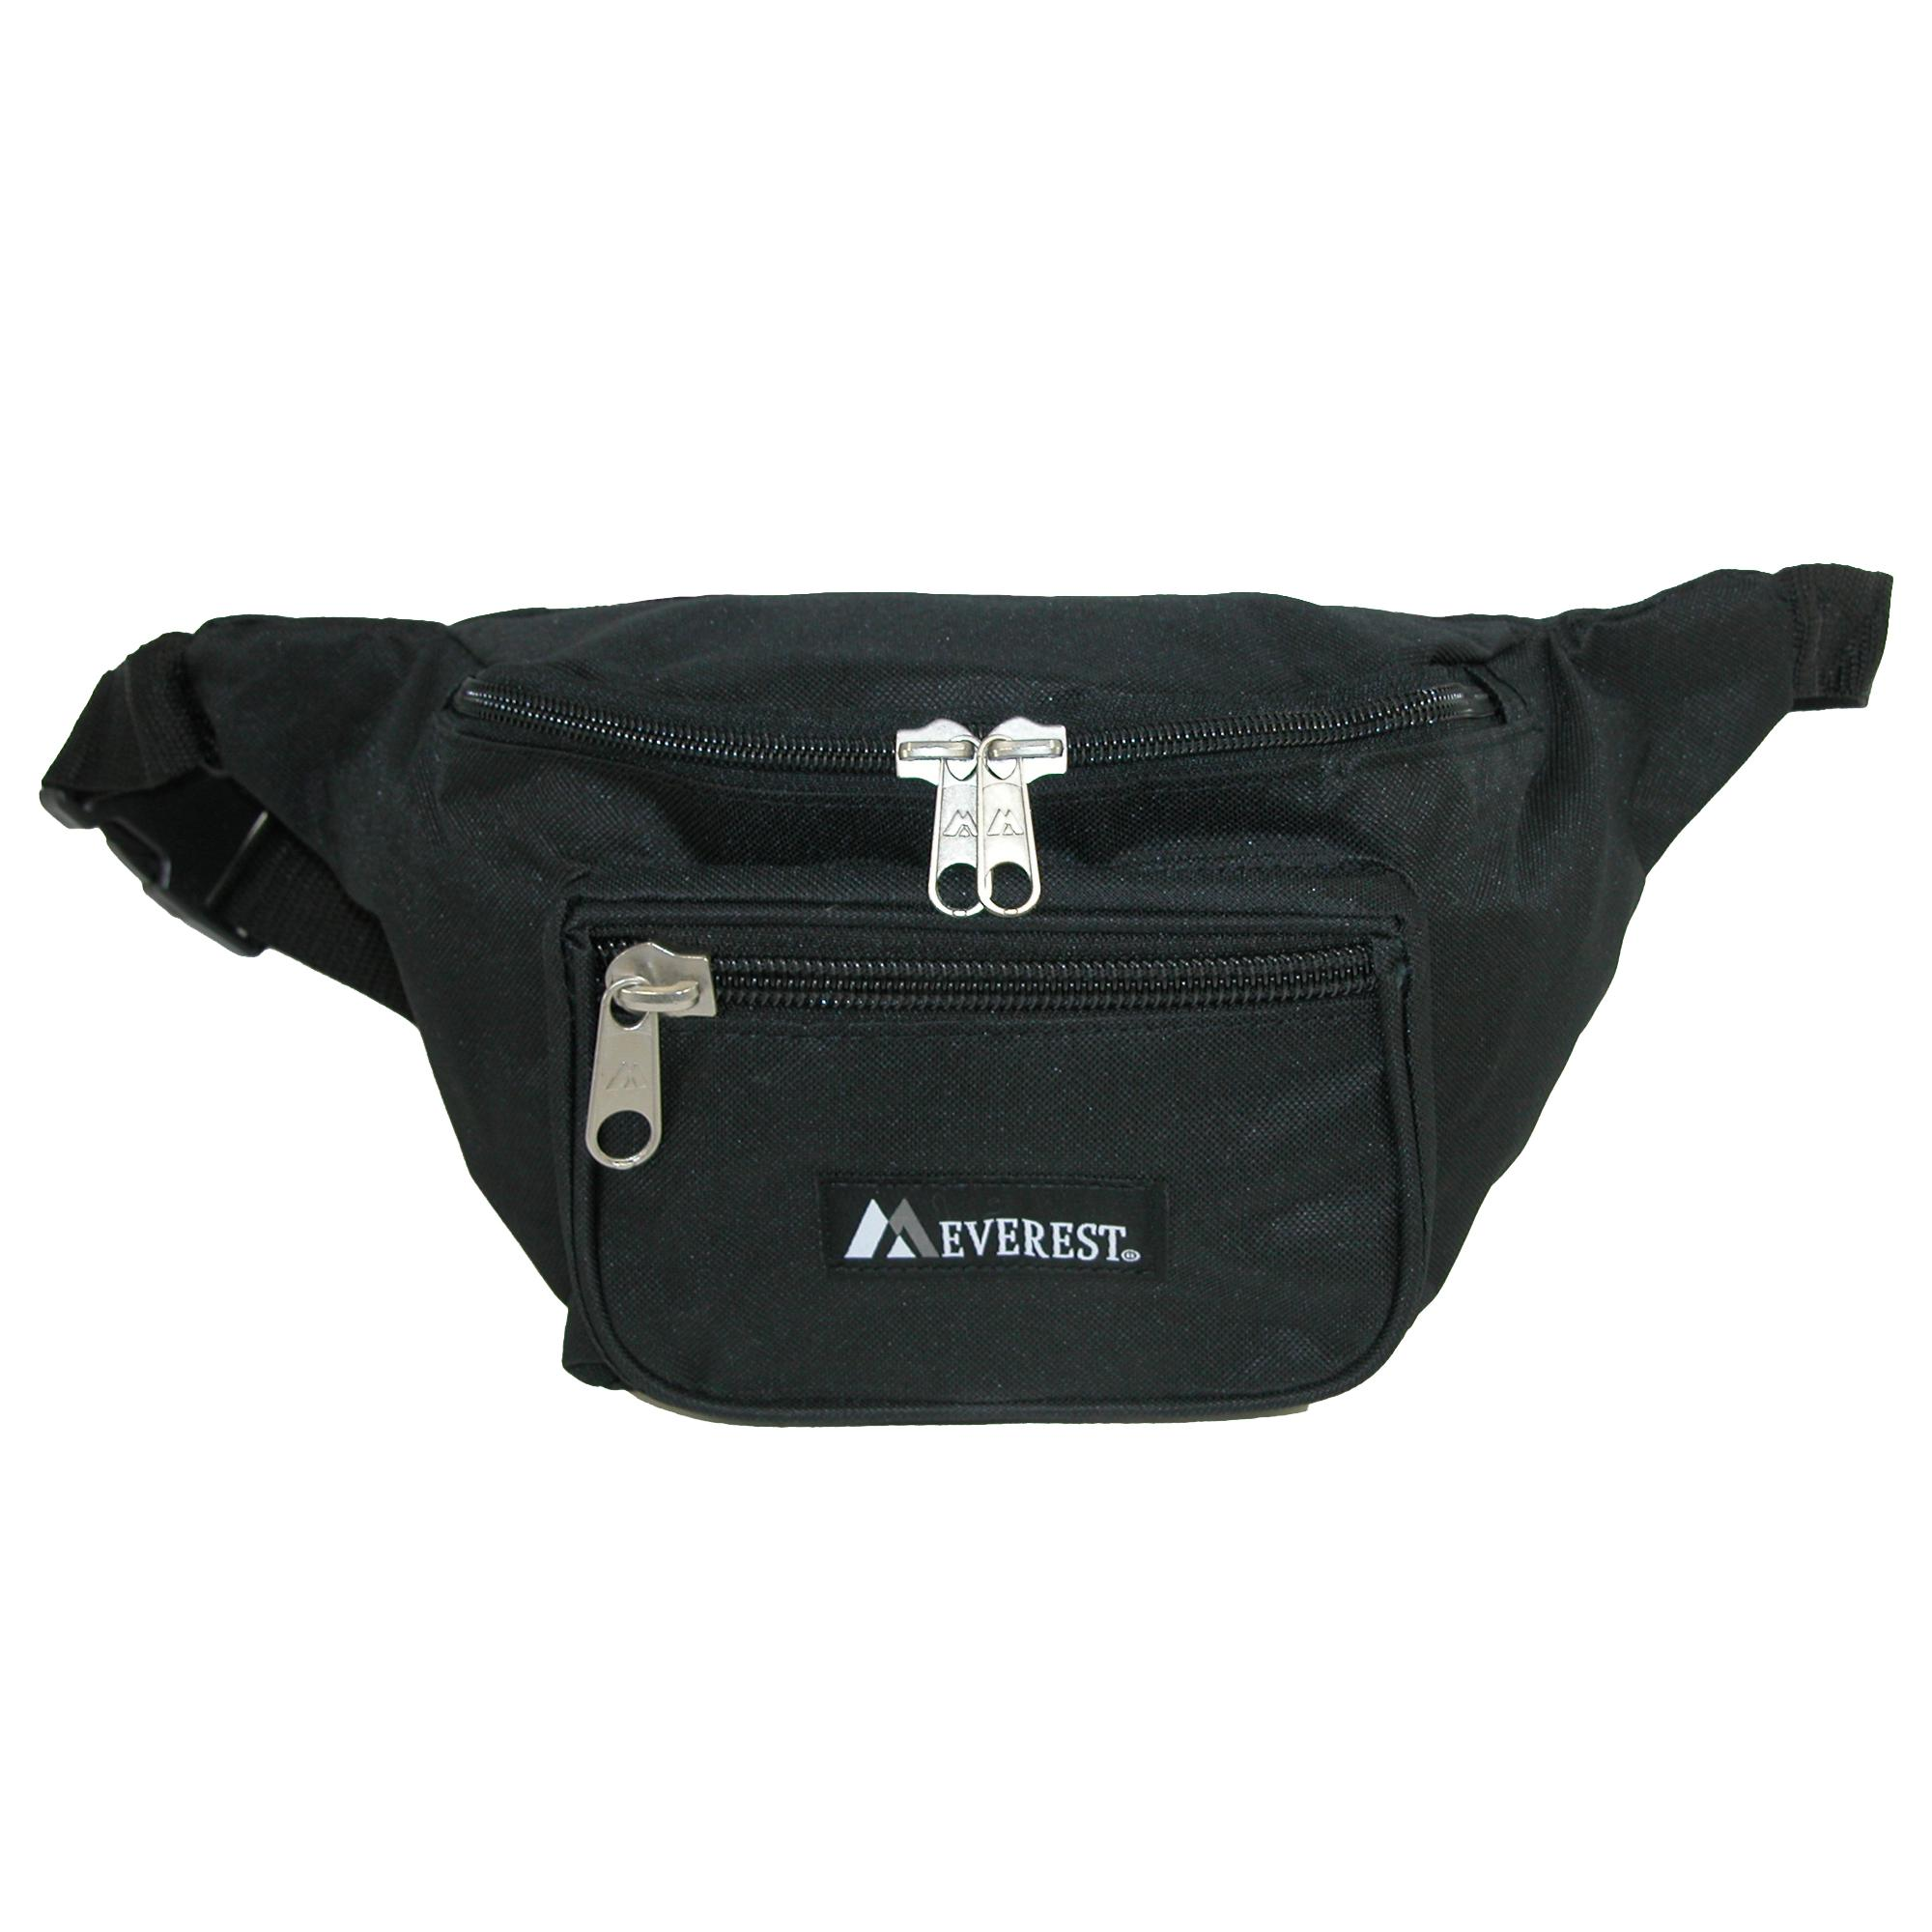 Everest_Fabric_Medium_Size_Waist_Pack_